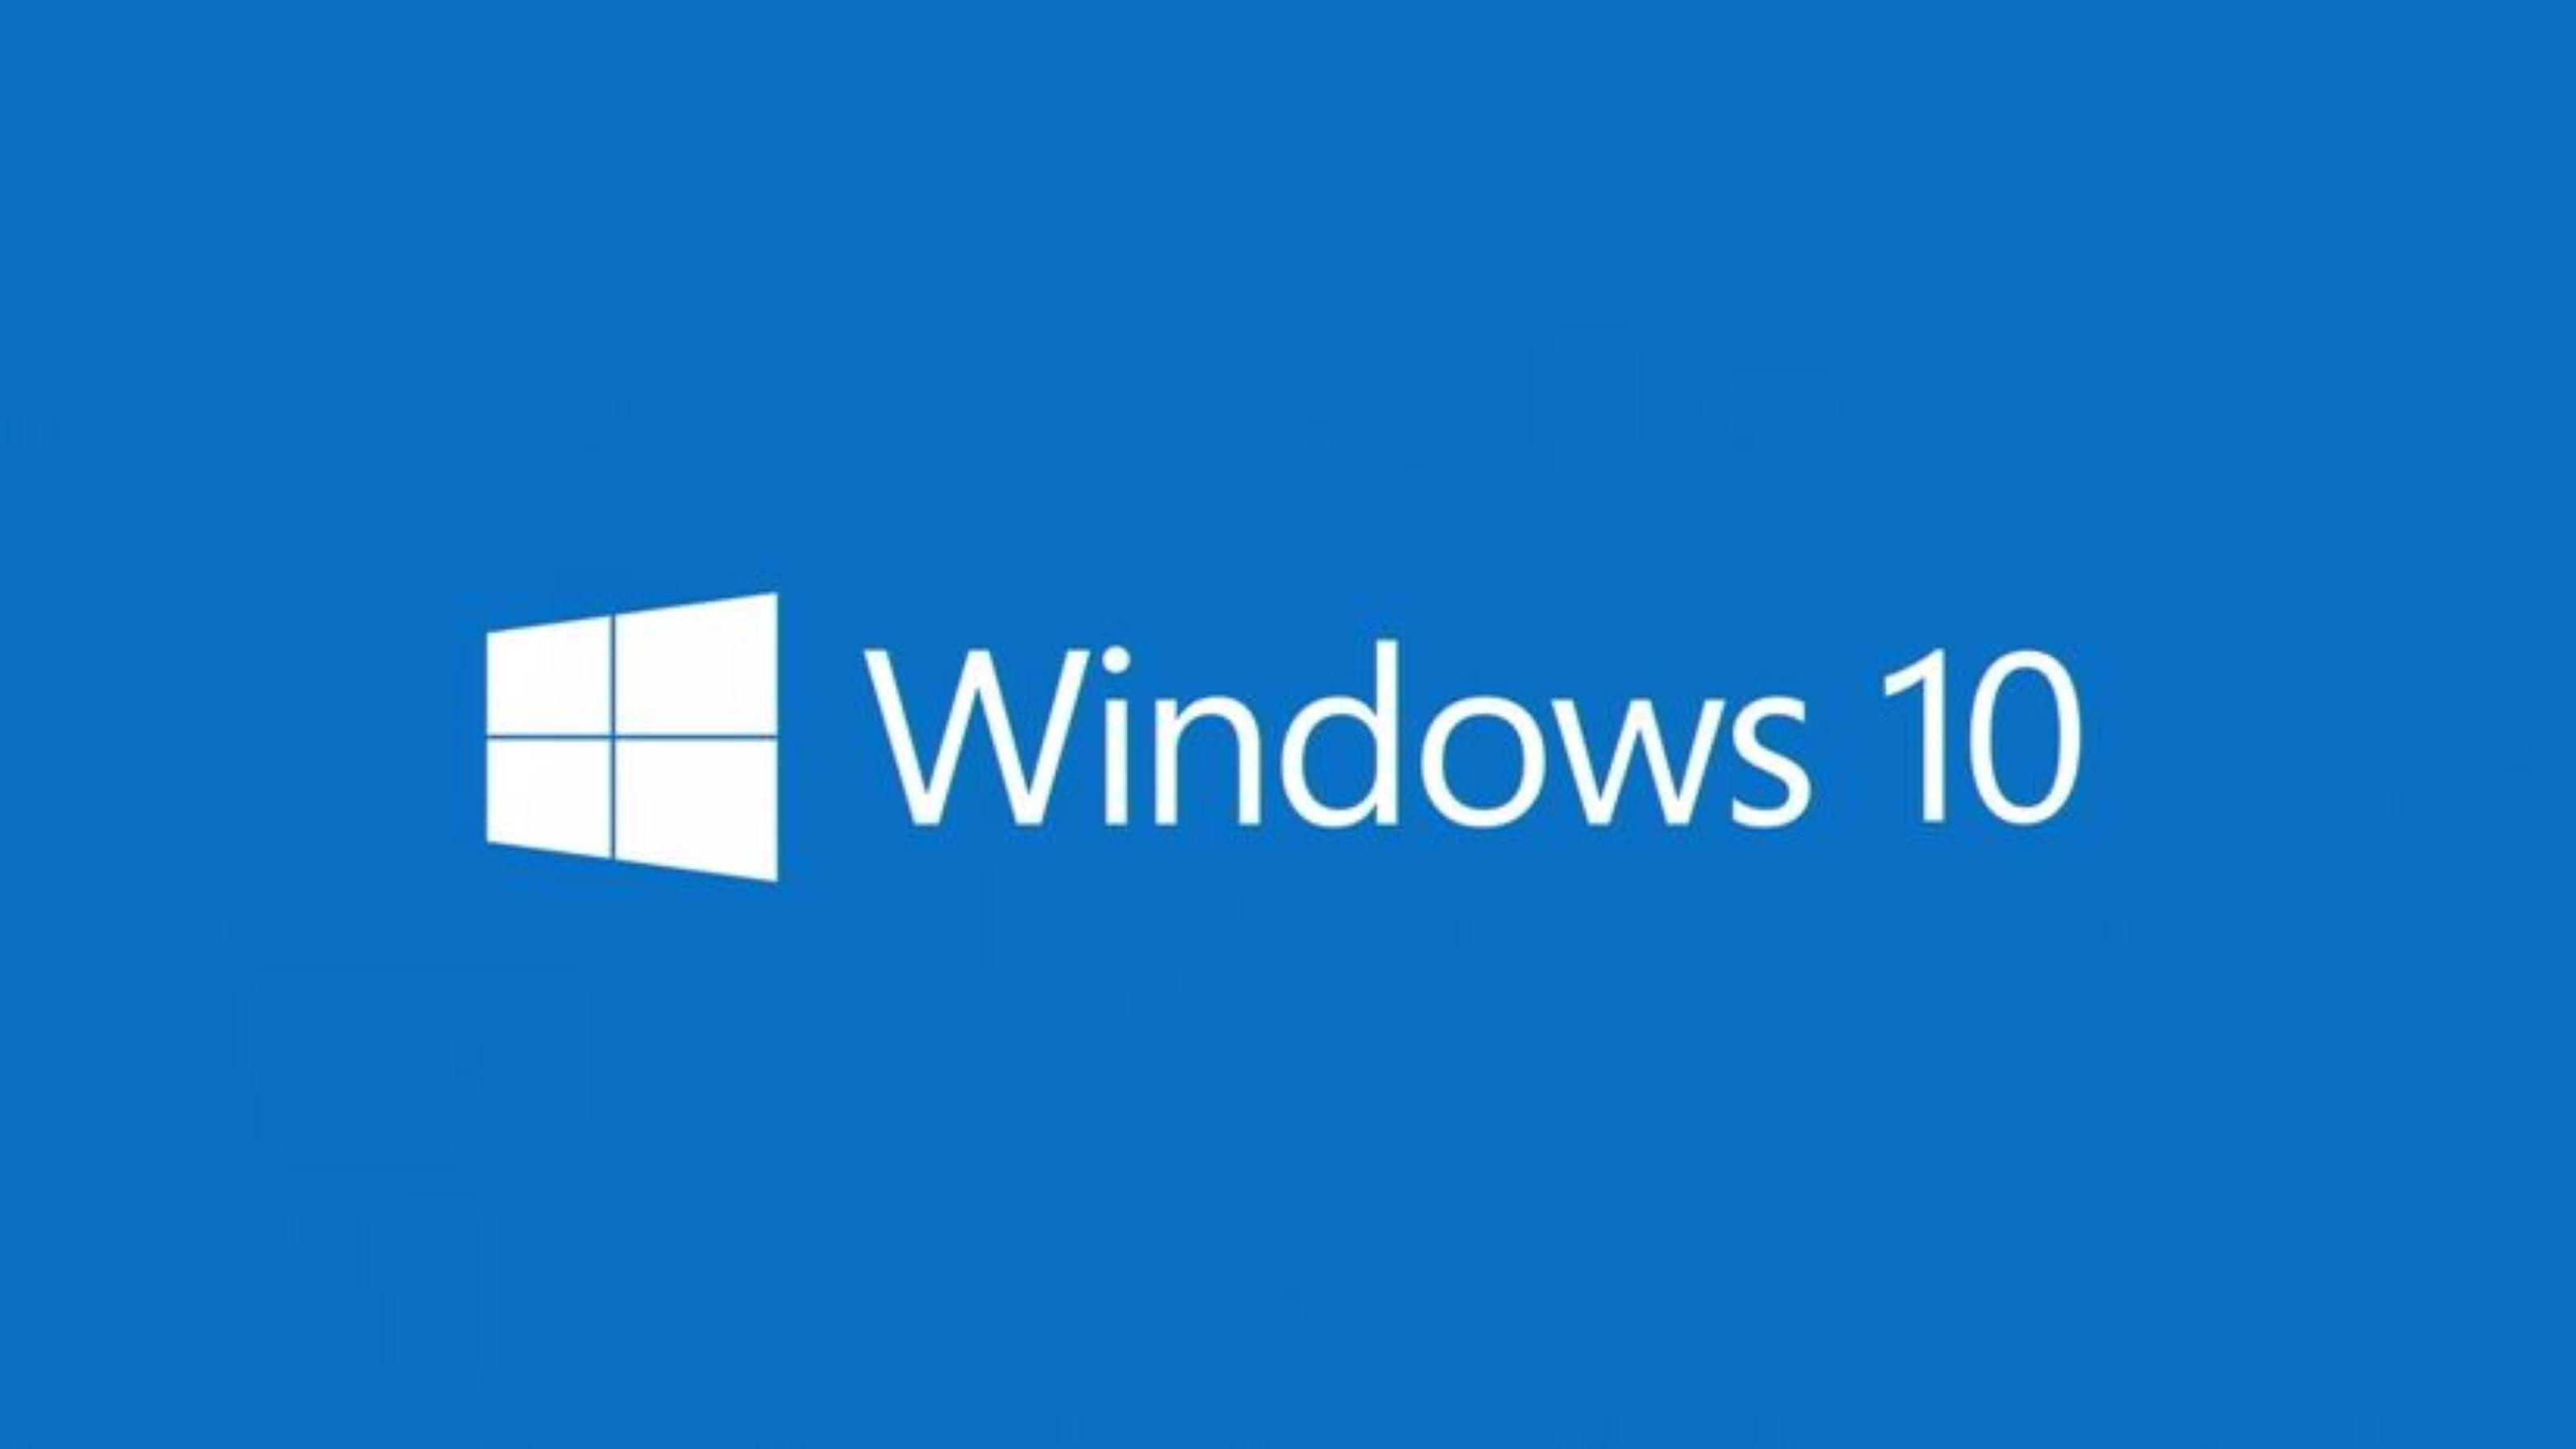 Don't Upgrade to Windows 10 (just yet)